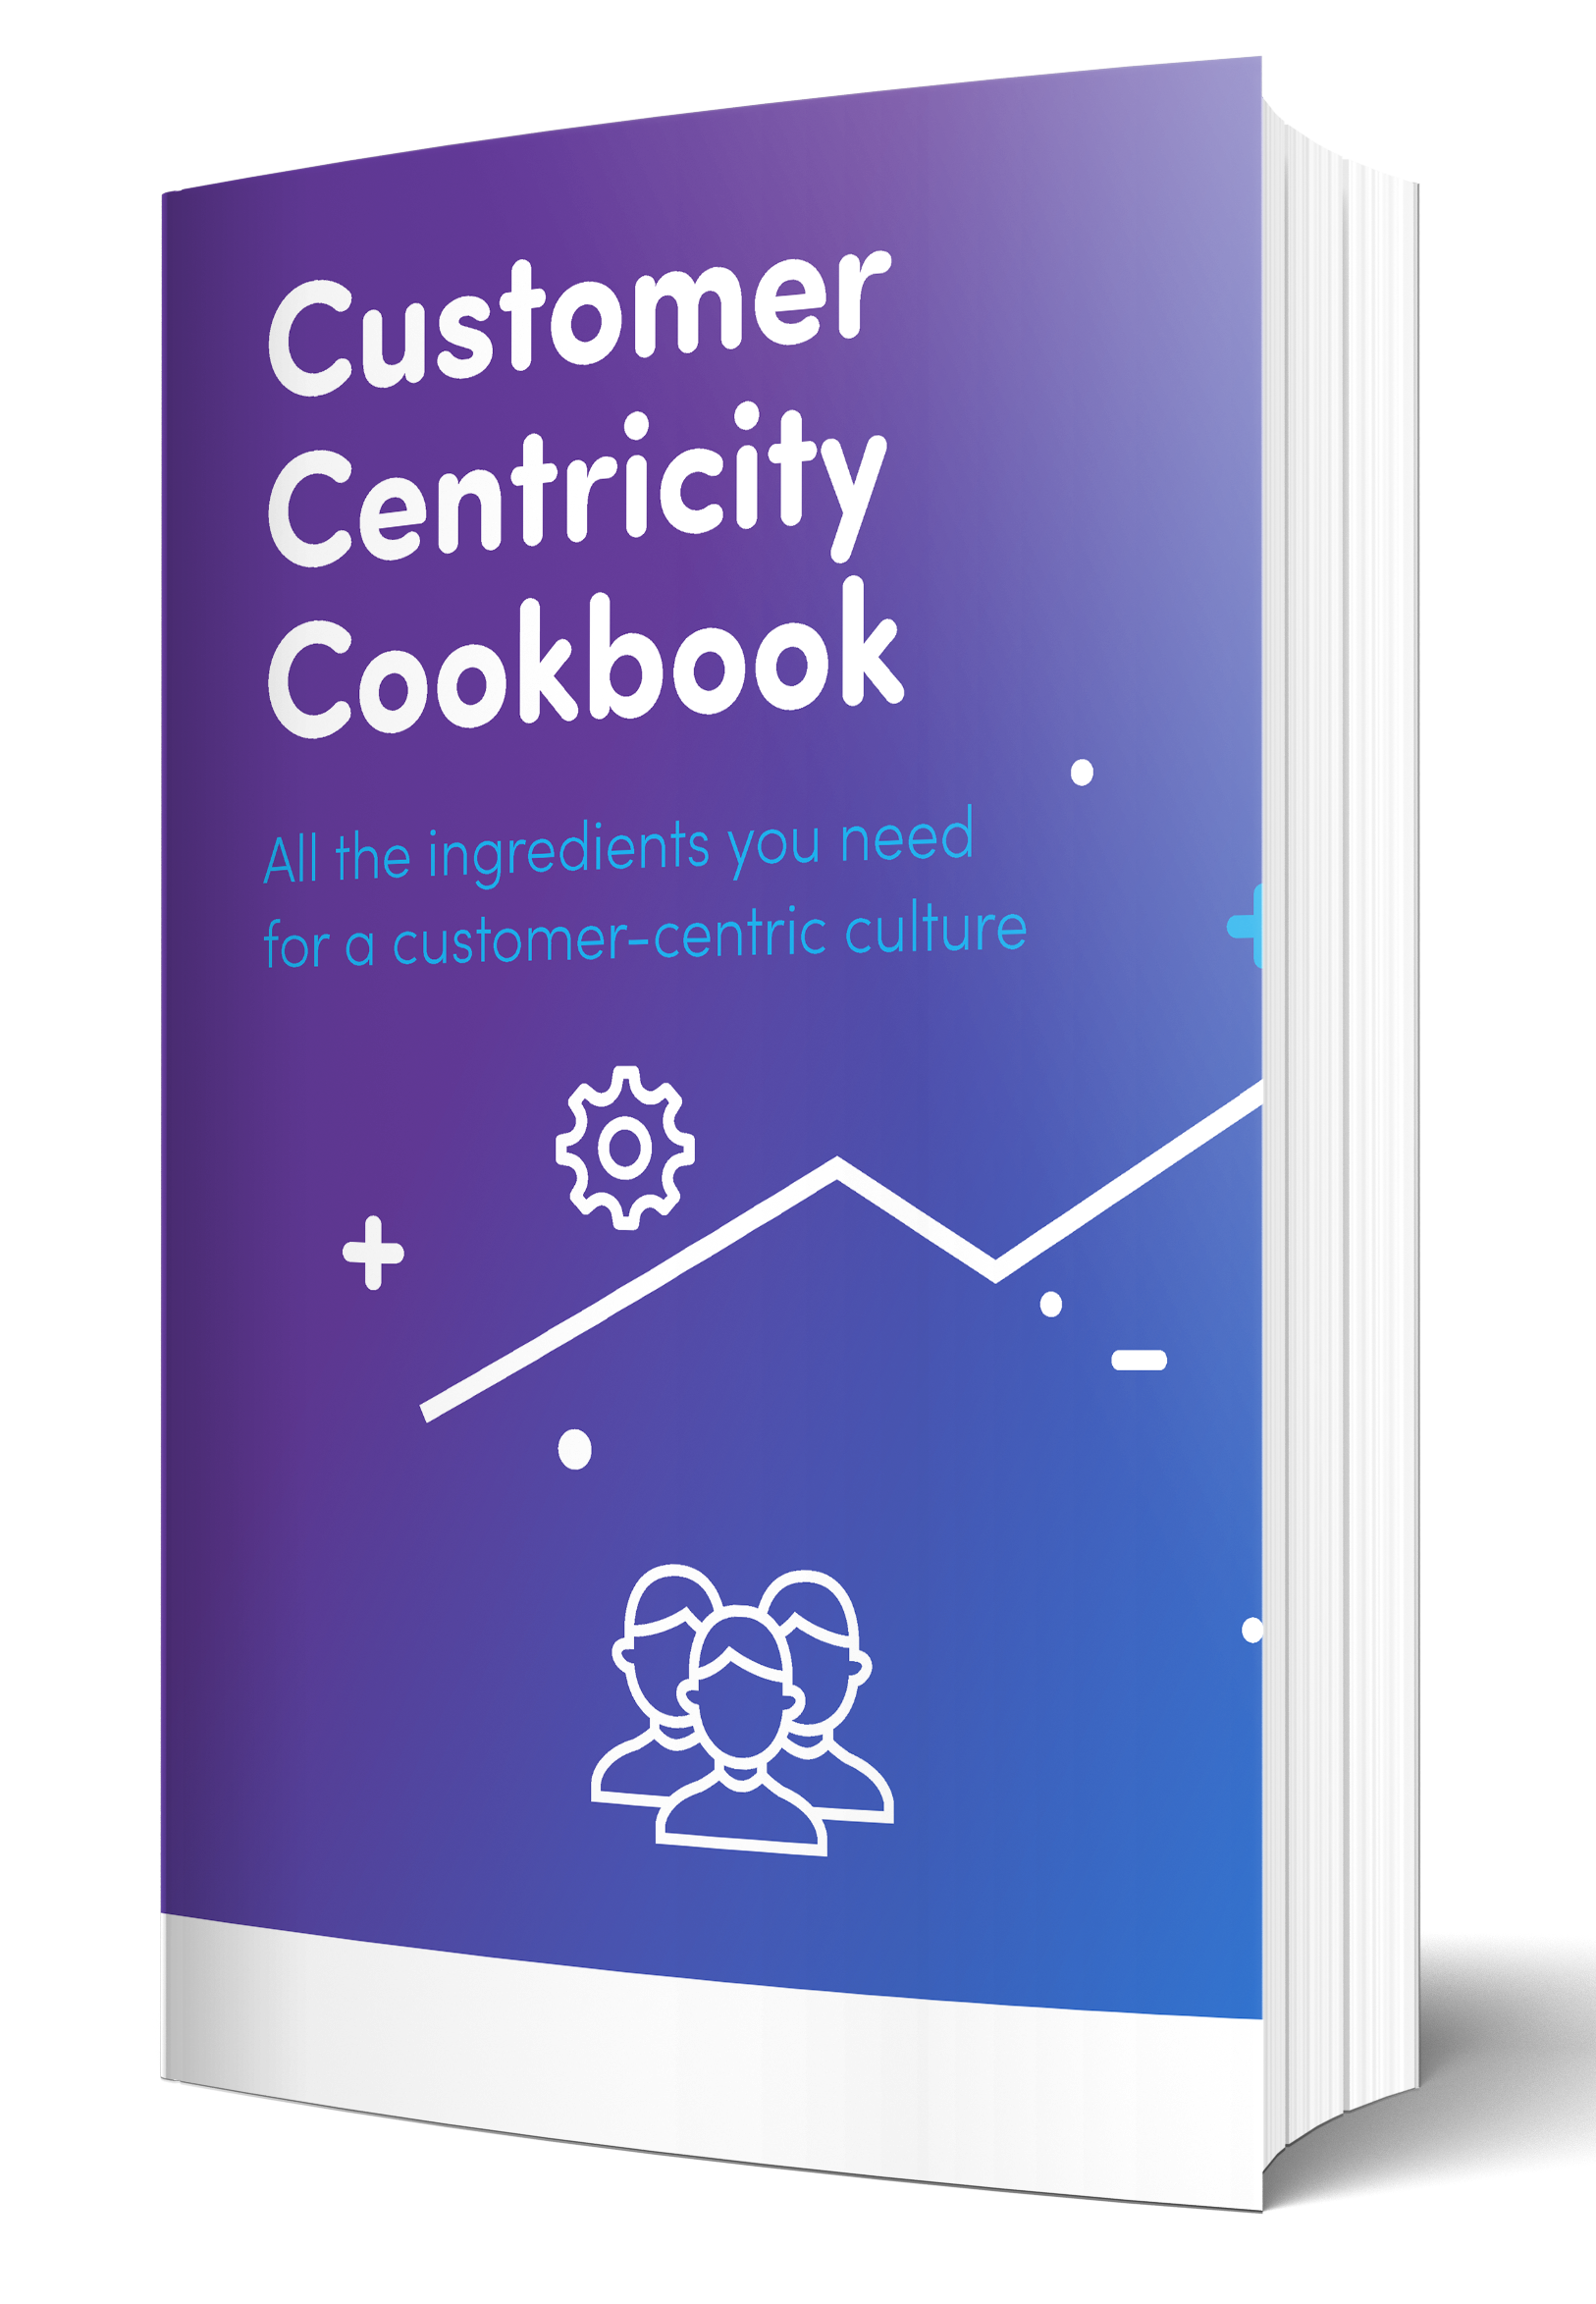 customer centricity cookbook mockup